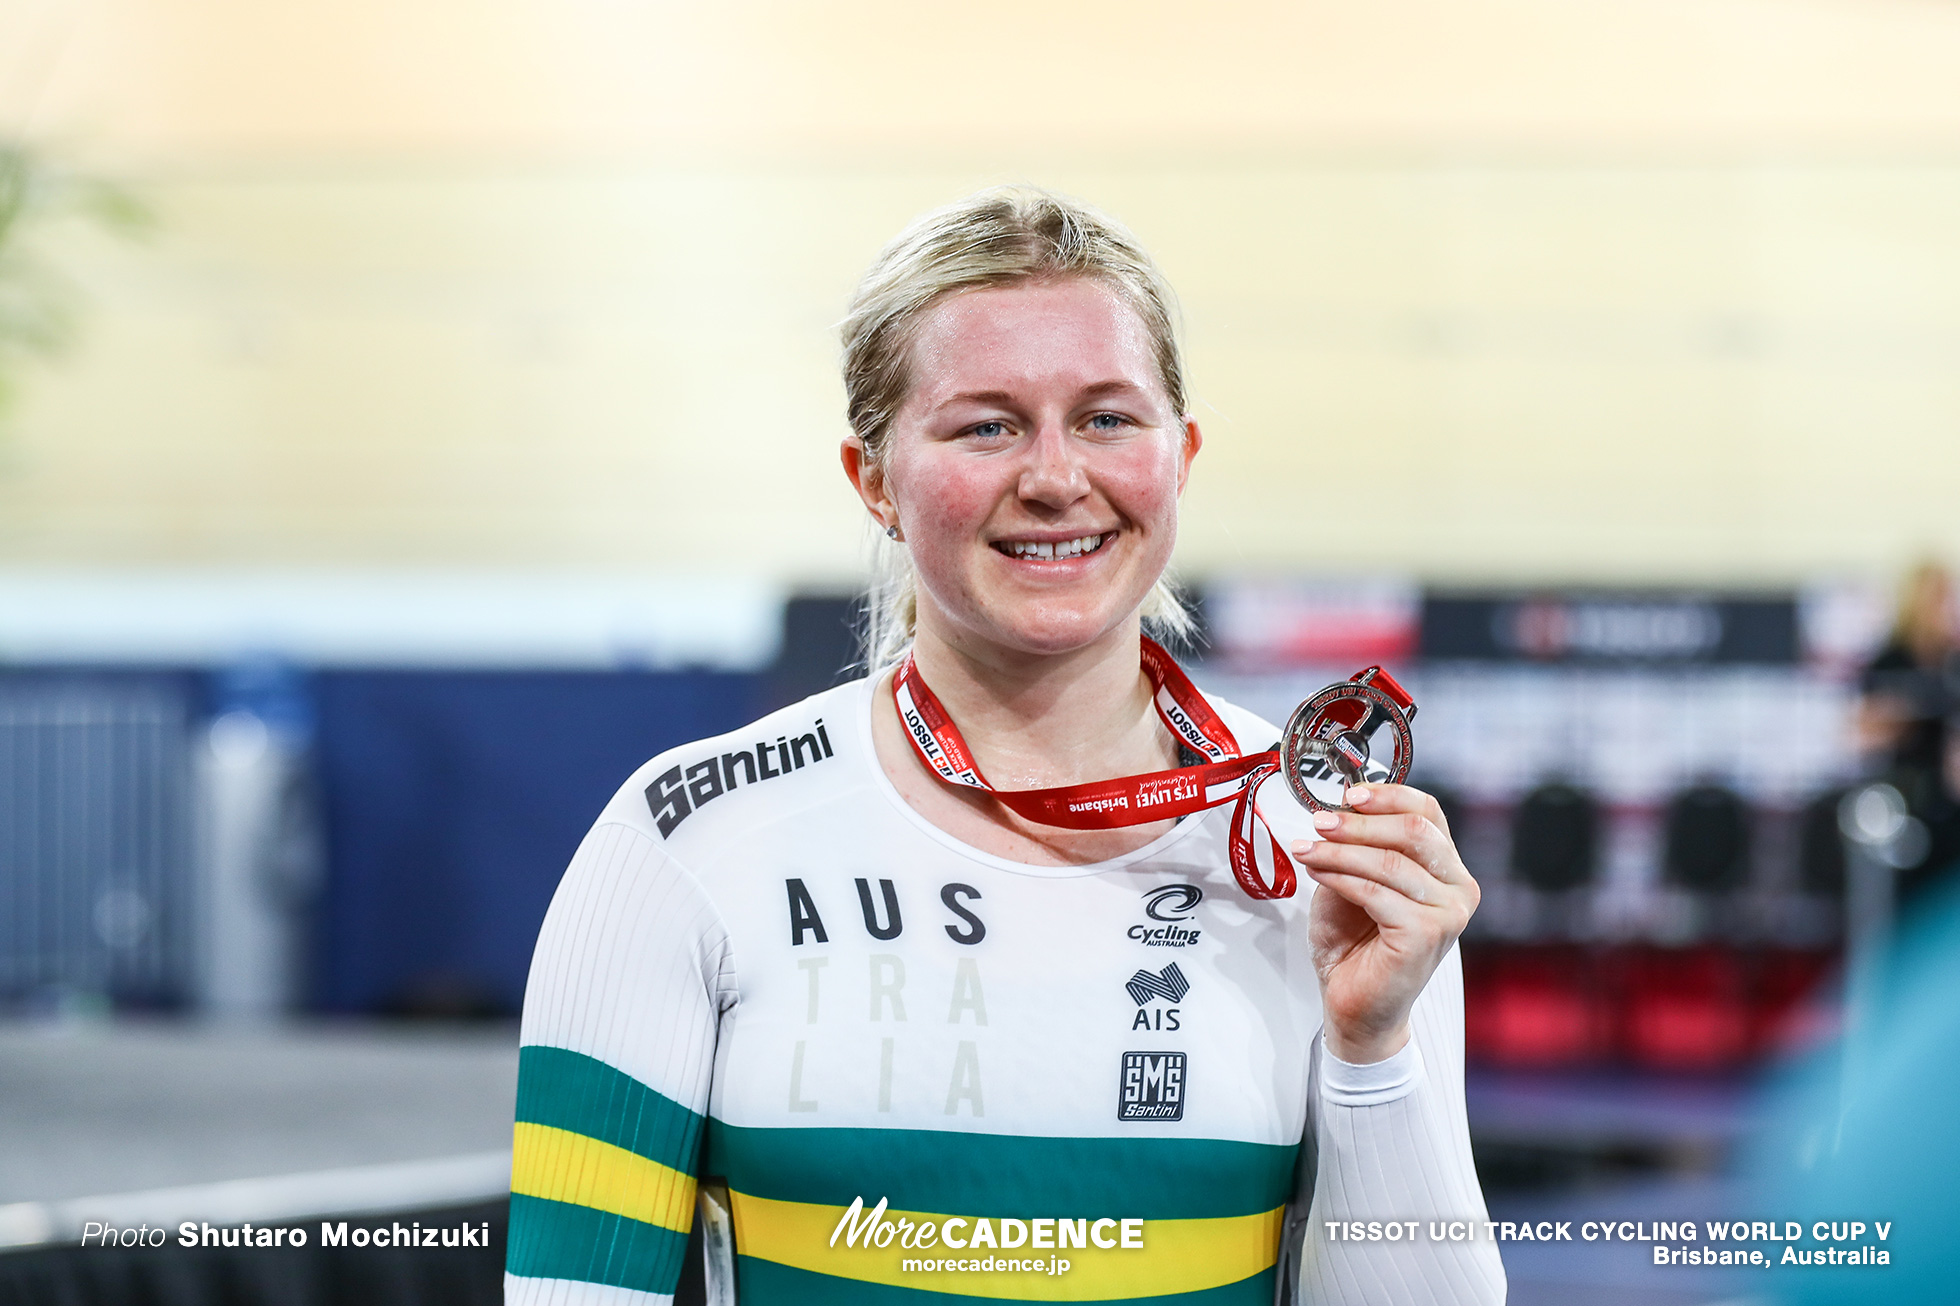 Final / Women's Keirin / TISSOT UCI TRACK CYCLING WORLD CUP V, Brisbane, Australia, Stephanie MORTON ステファニー・モートン